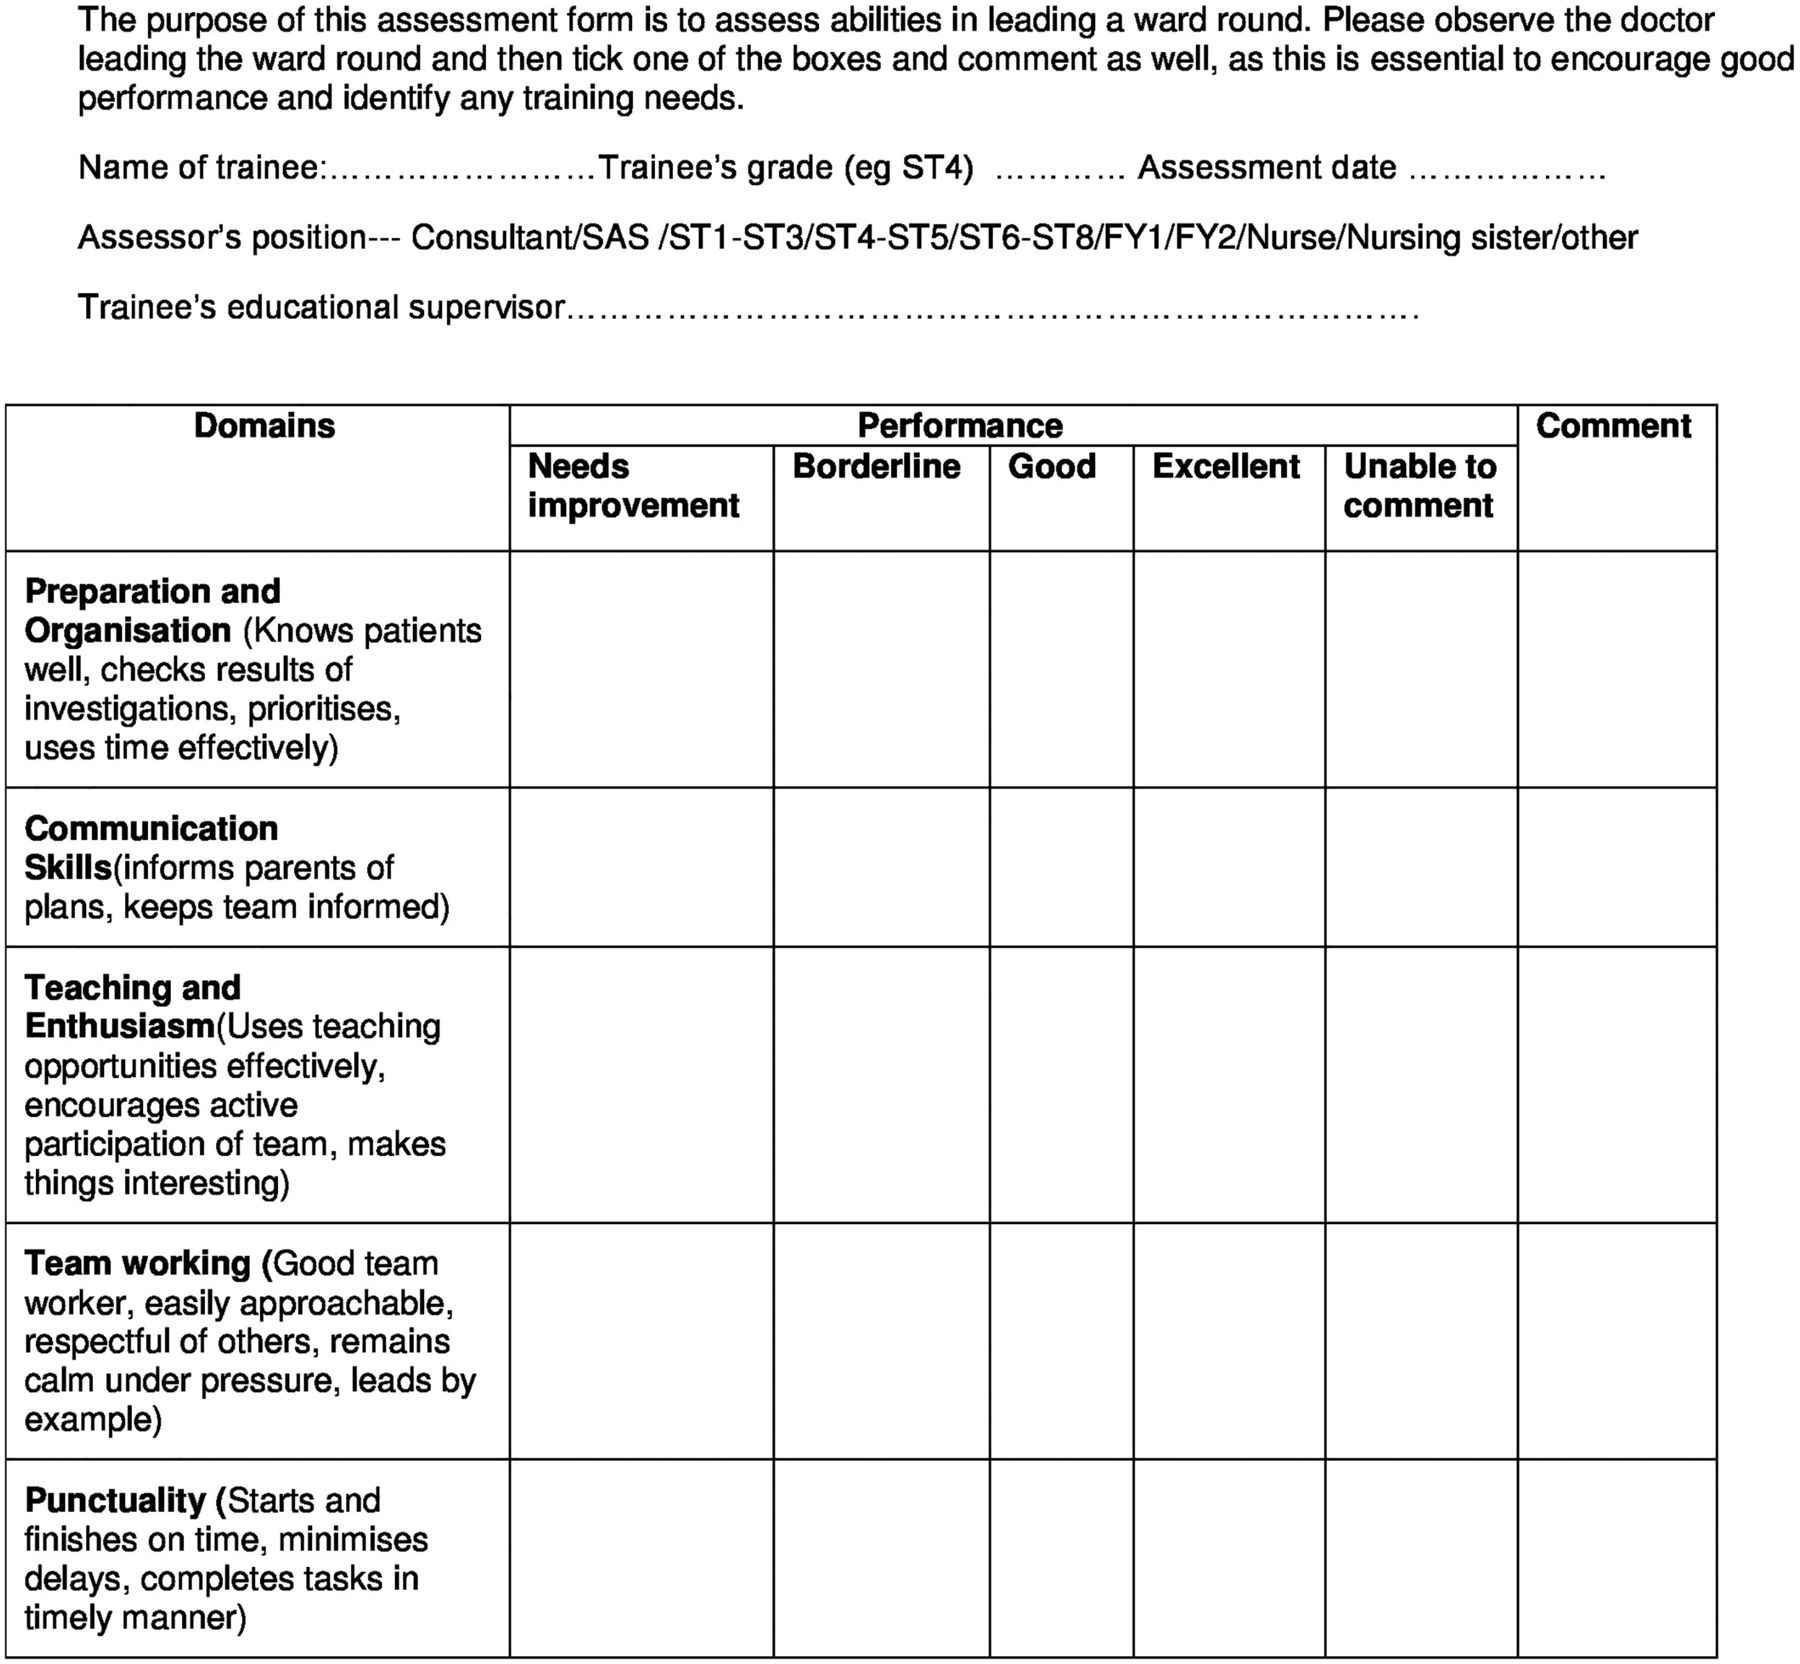 A Multisource Feedback Tool To Assess Ward Round Leadership Skills